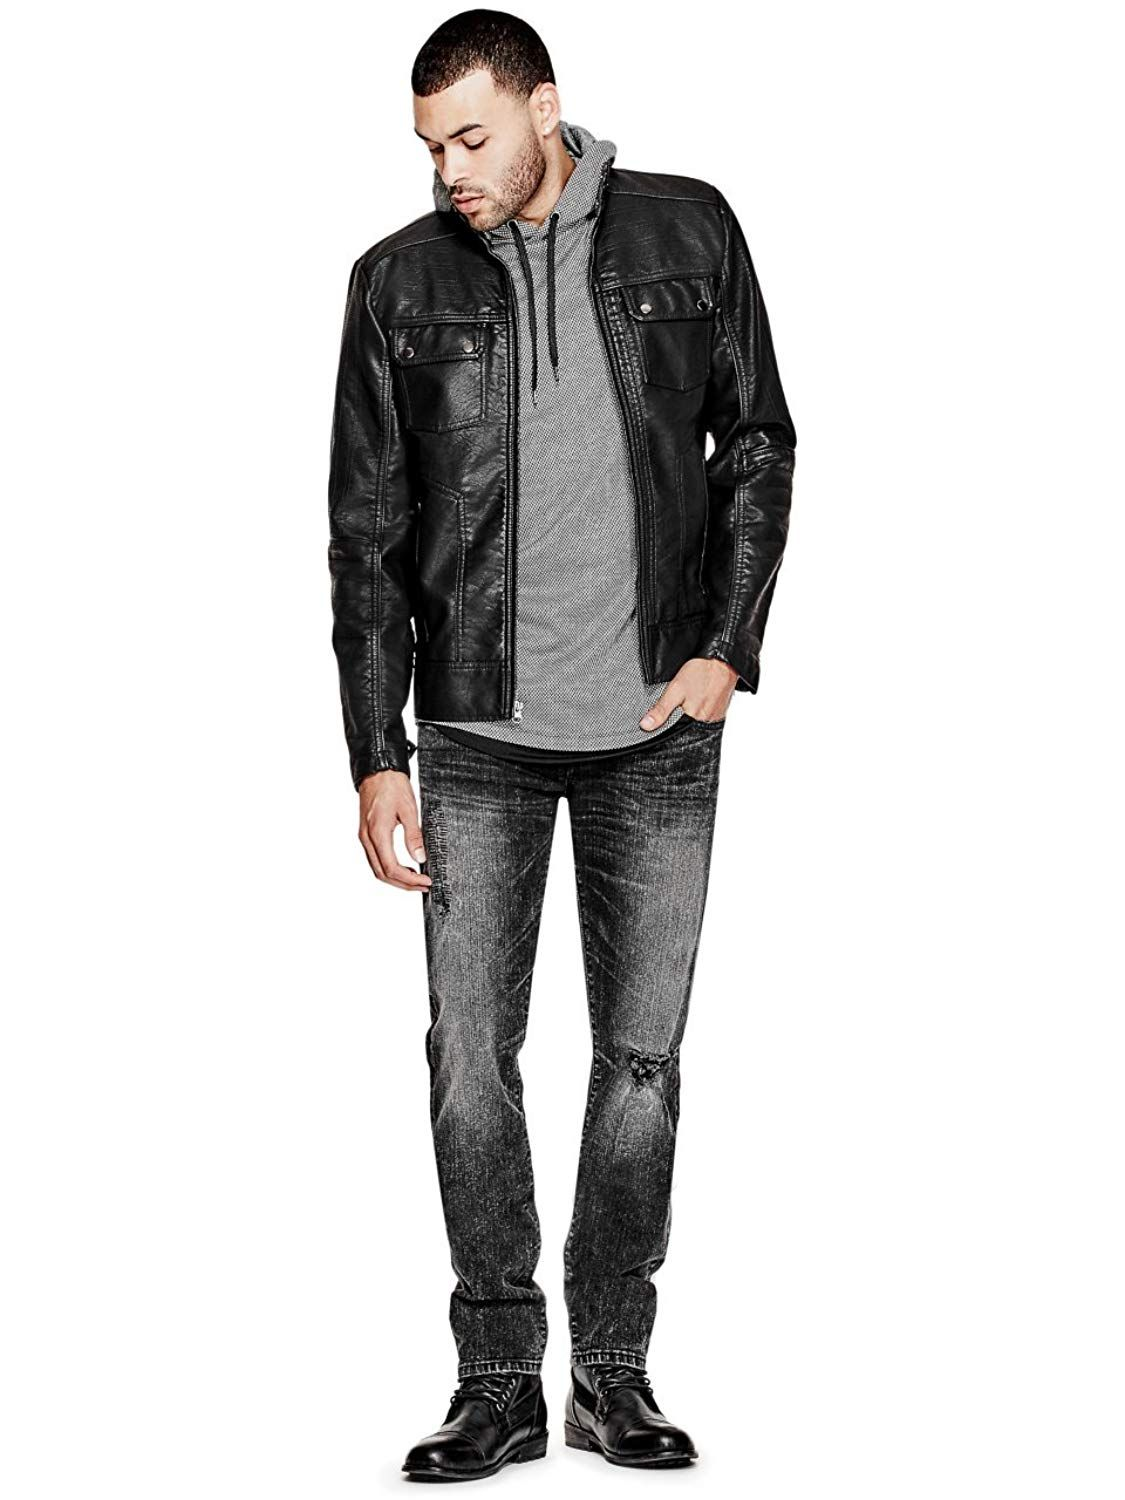 [Affiliate] G by GUESS Men's Sleek FauxLeather Jacket